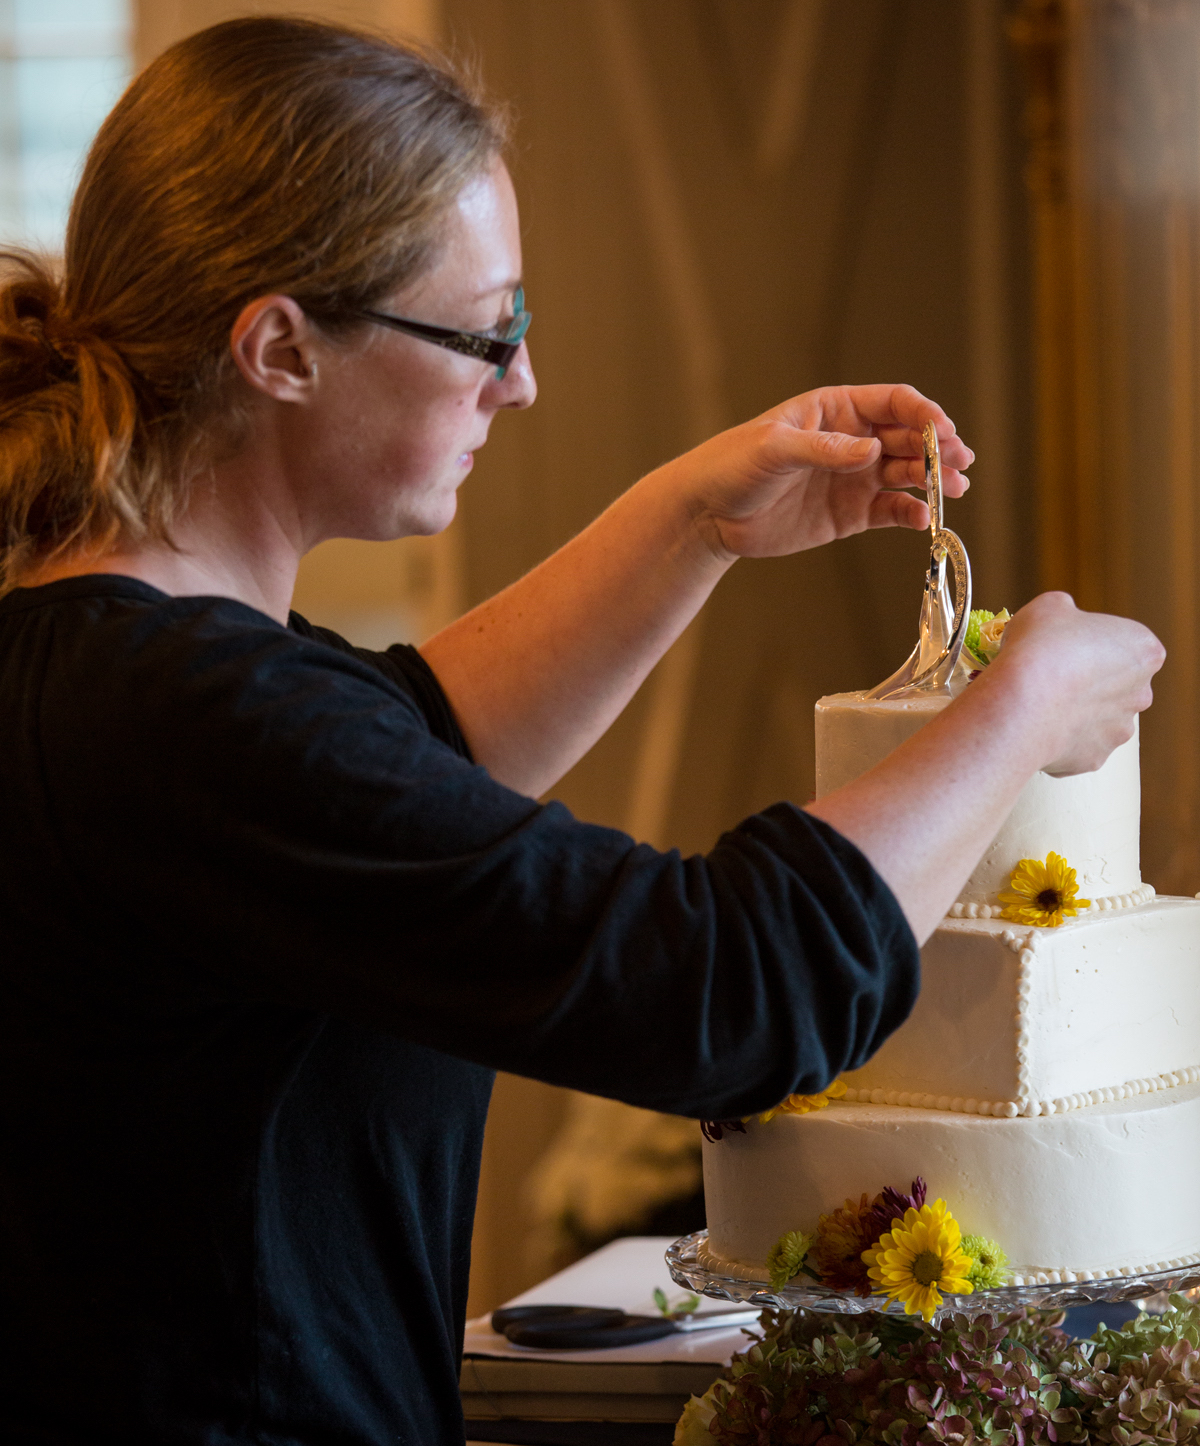 Meet Chef Danie - A graduate of Culinary Institute of America and Pennsylvania Culinary, Sous and Pastry Chef Danielle Hunter is renown for her delicious and stunning wedding cakes — as well as mini dessert trays, such as crème brûlée and chocolate crème brûlée, mini pies, cobblers and assorted cheesecakes.